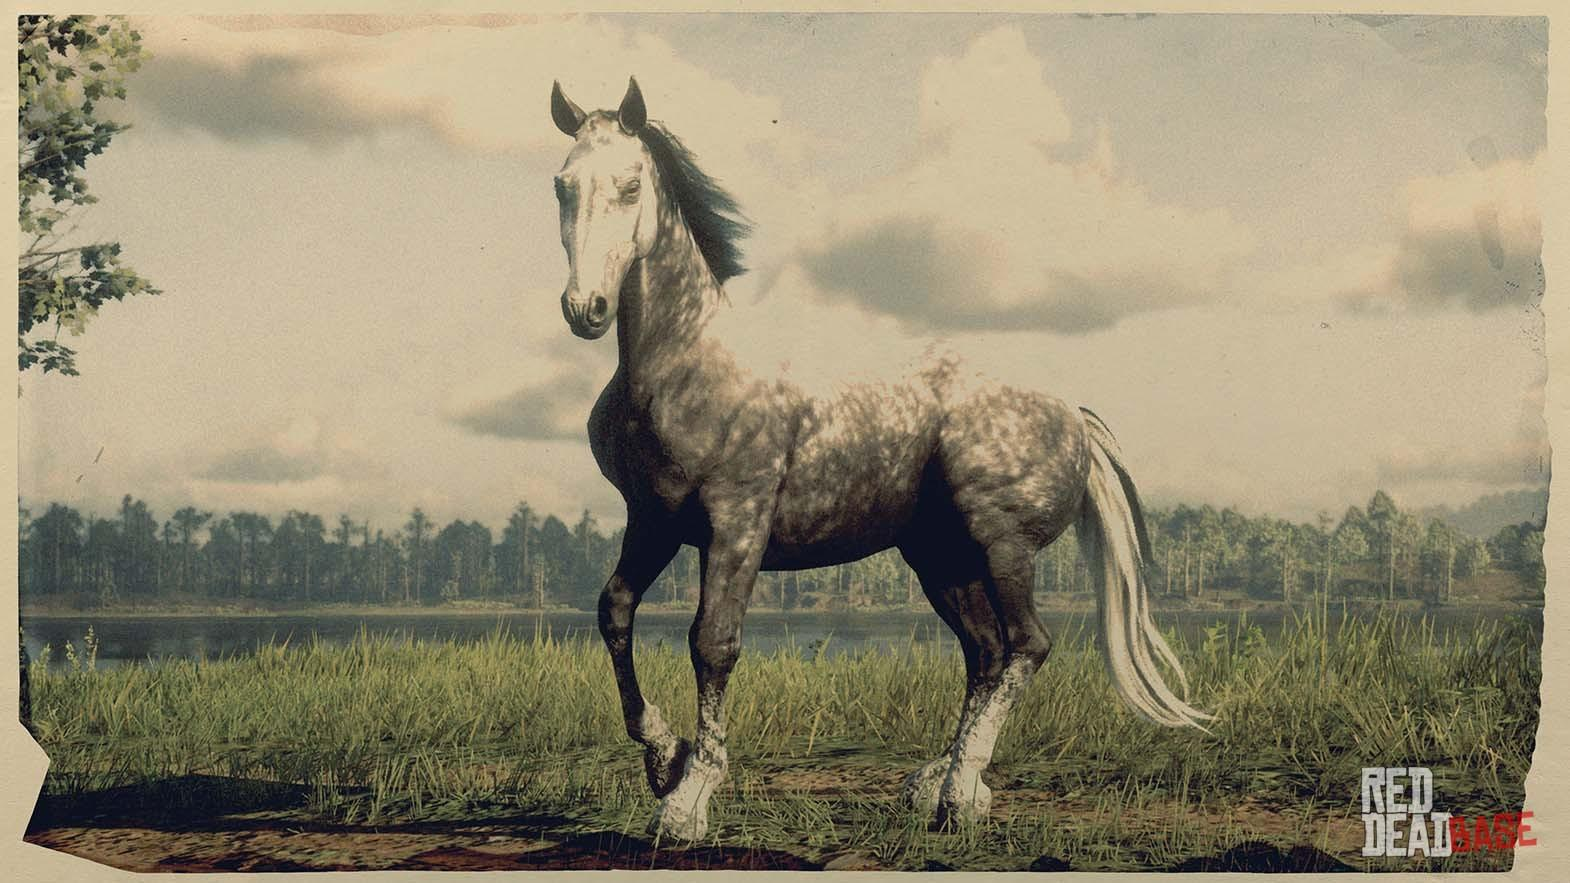 Hungarian Halfbred Red Dead Redemption 2 Horse Breeds